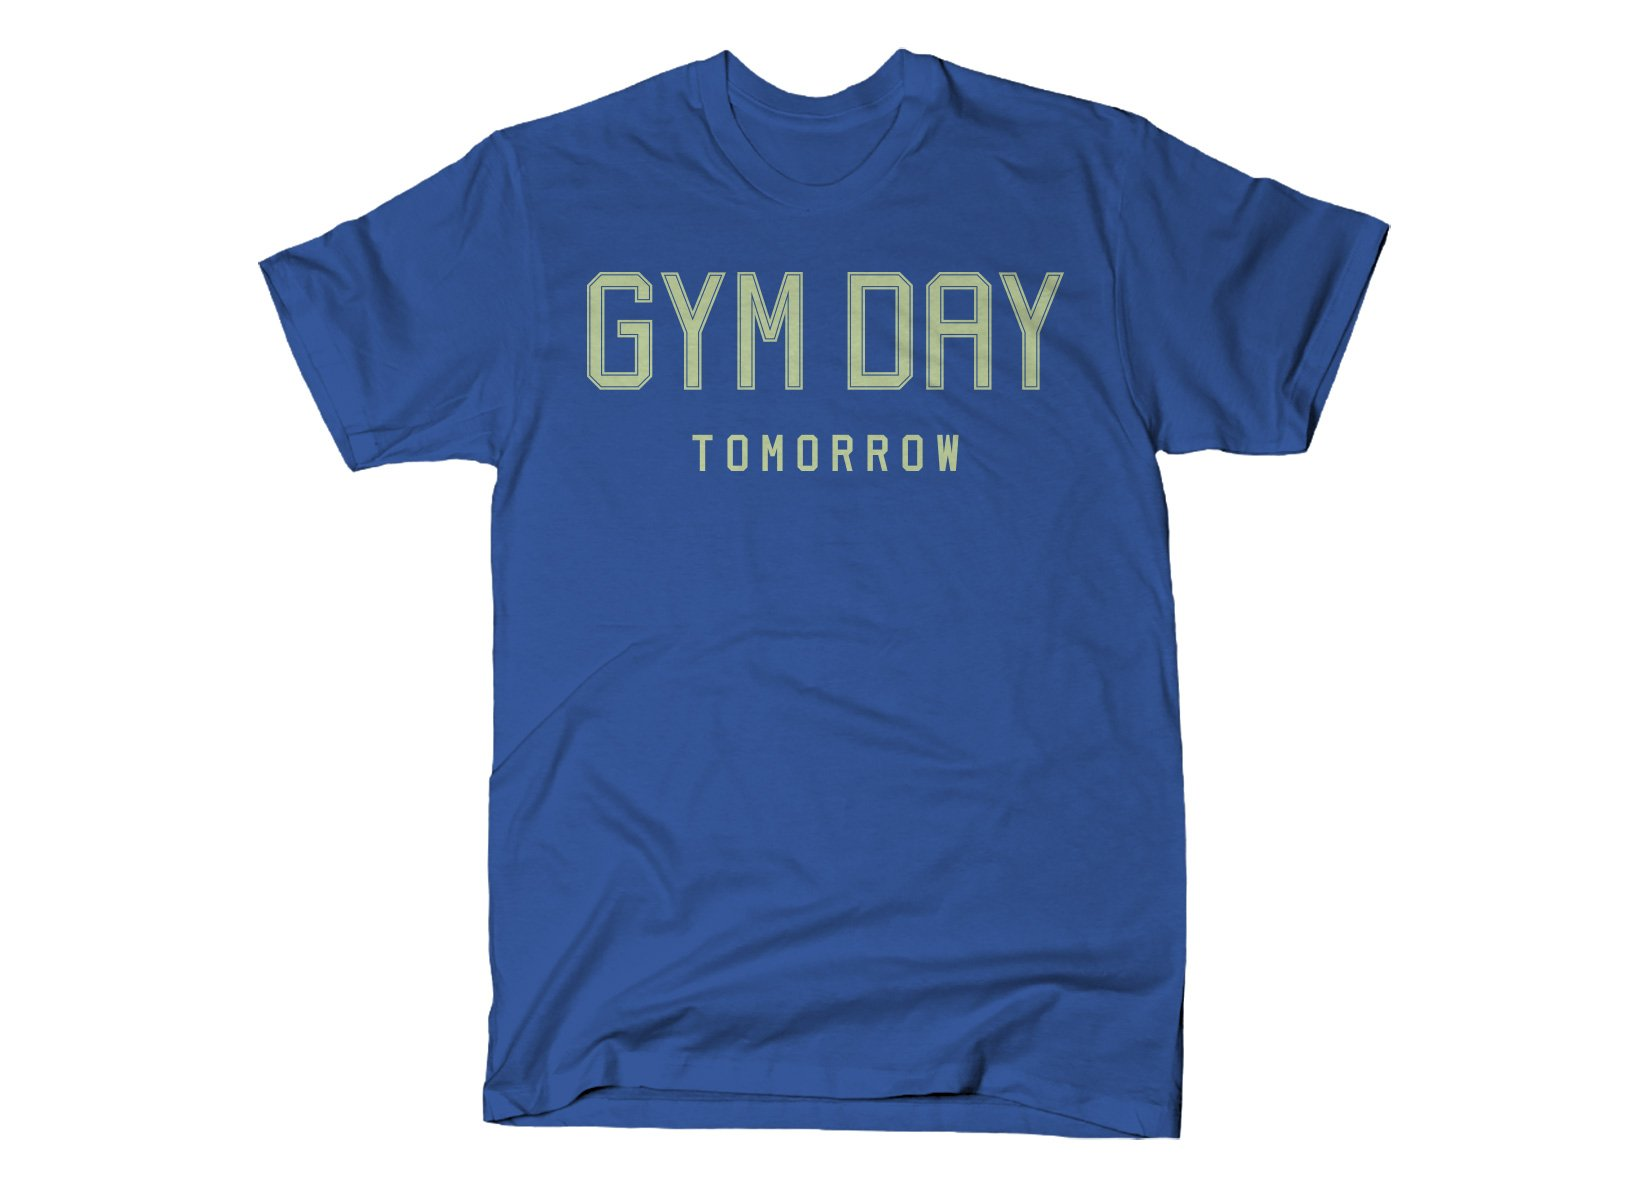 Gym Day Tomorrow on Mens T-Shirt